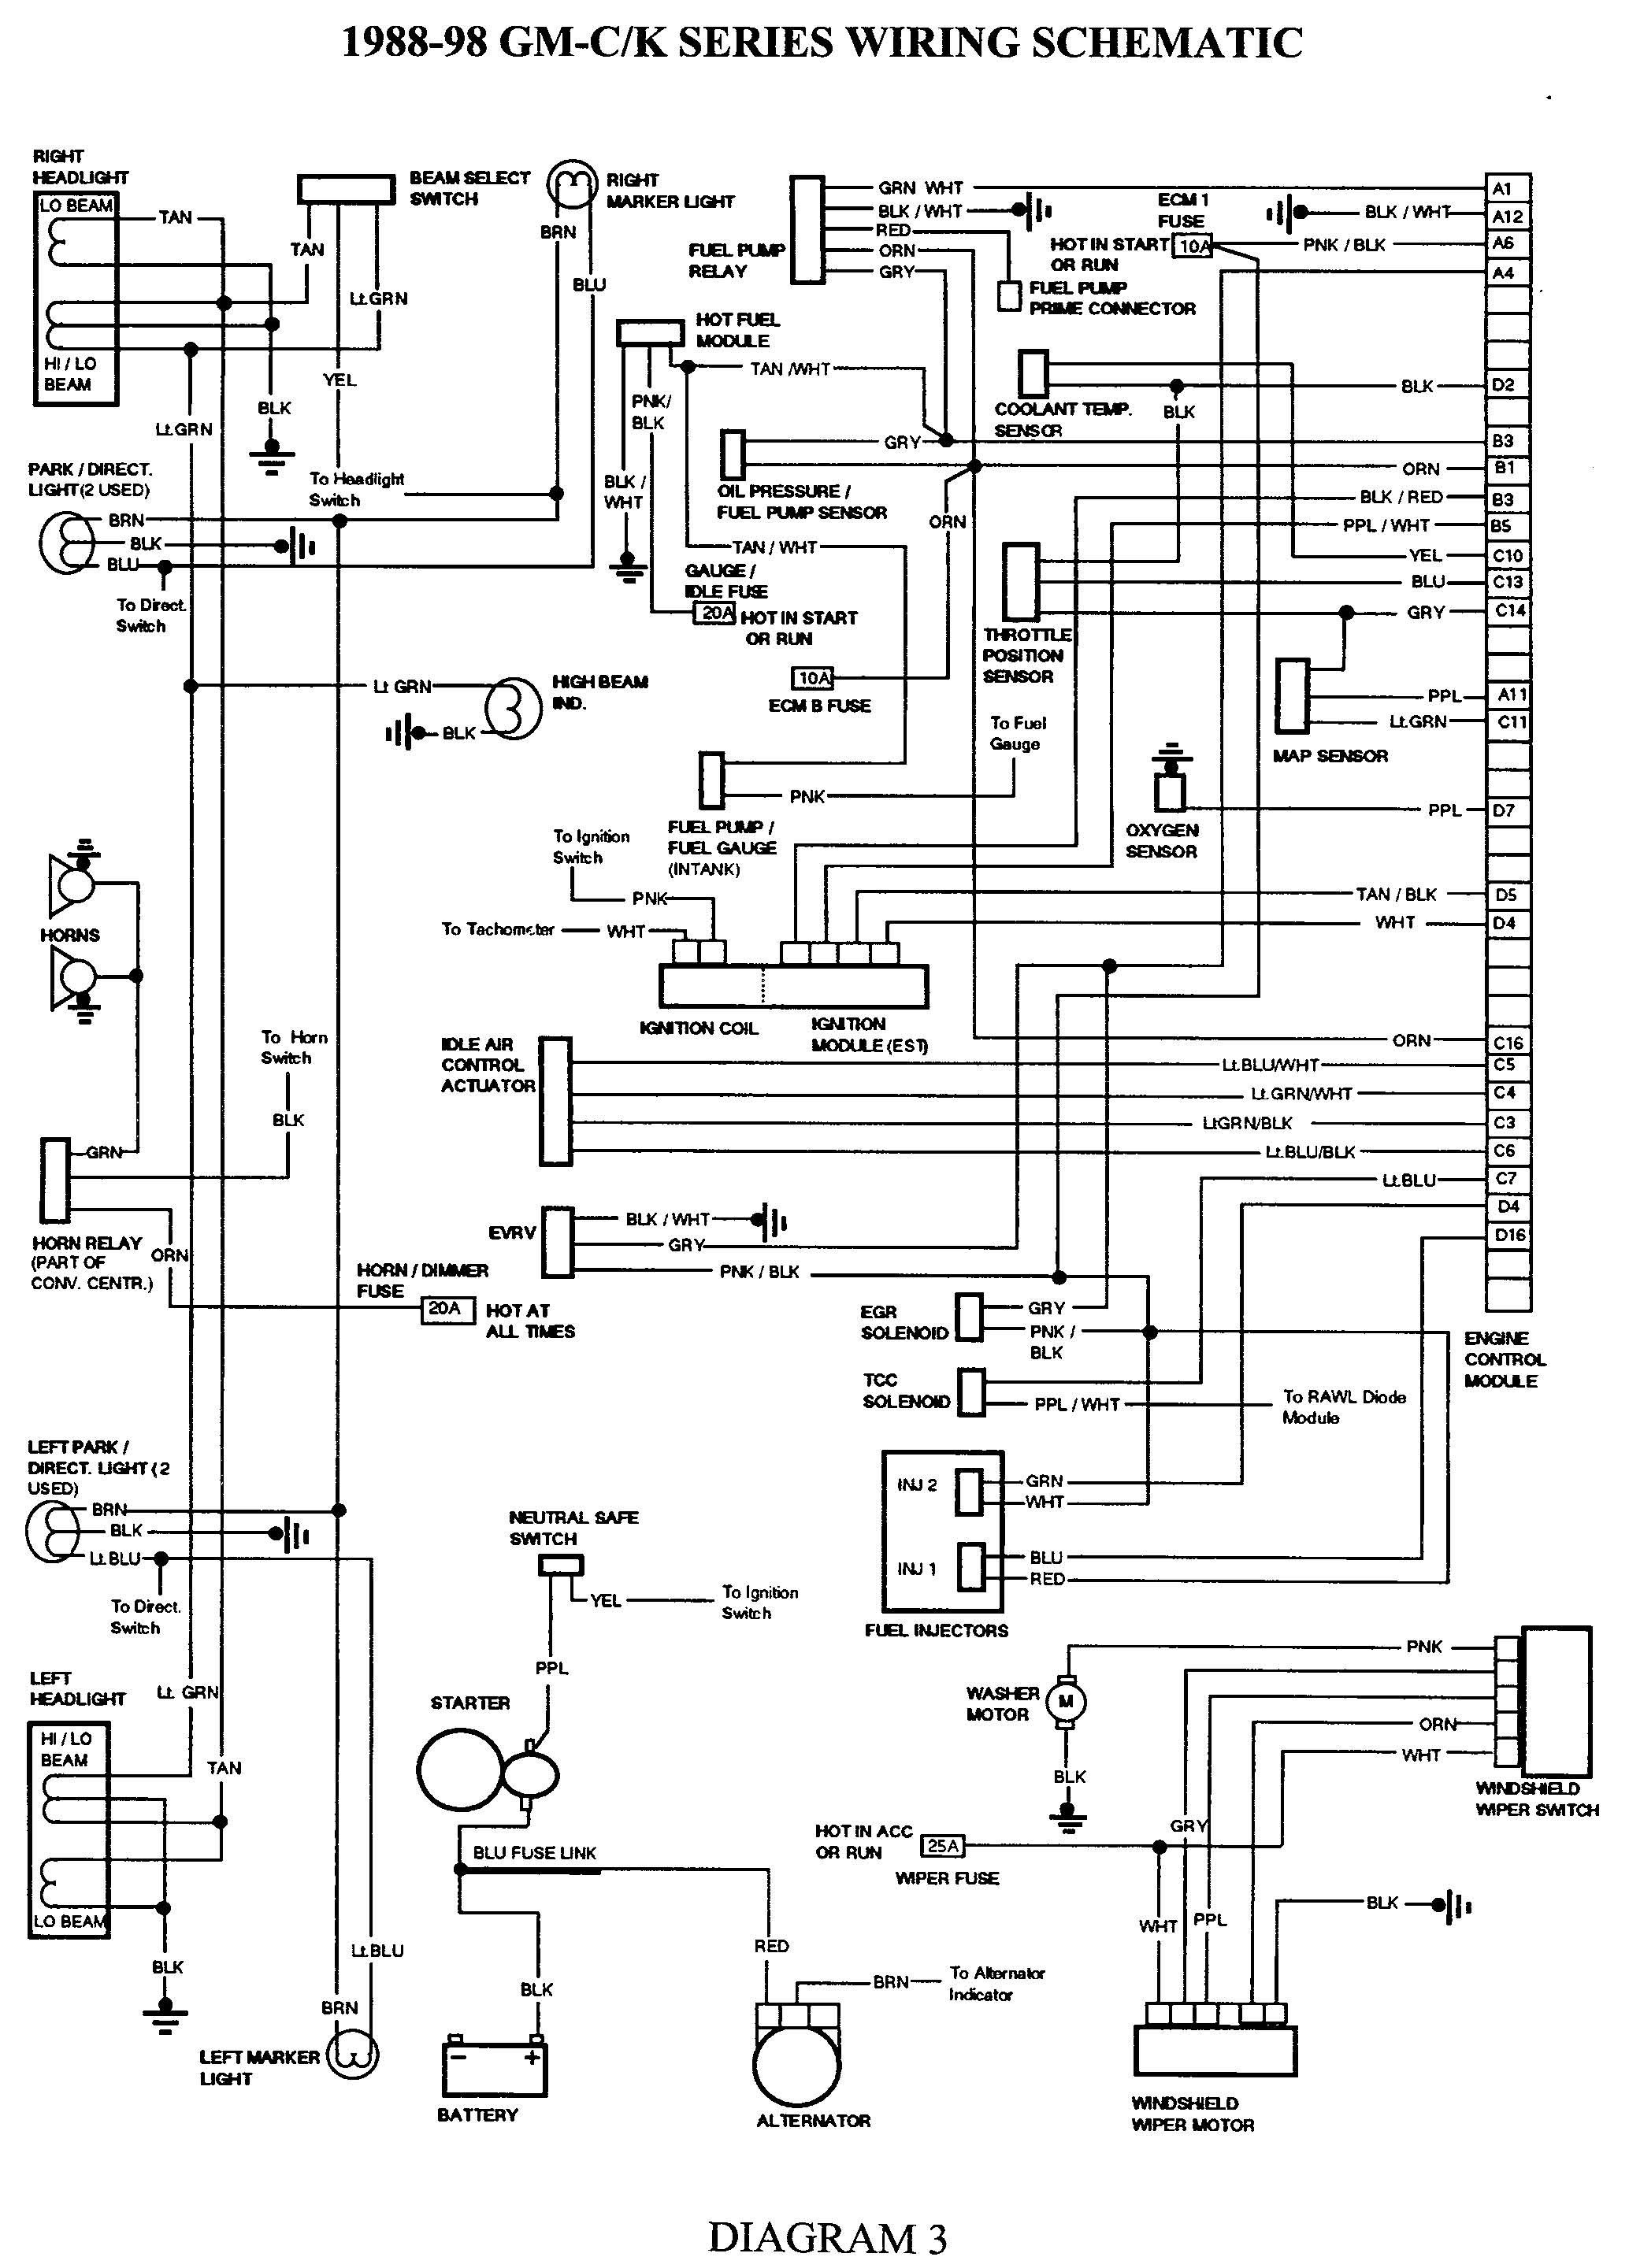 2008 Chevy Silverado Wiring Diagram Wiring Diagram 2008 Tahoe Another Blog About Wiring Diagram • Of 2008 Chevy Silverado Wiring Diagram